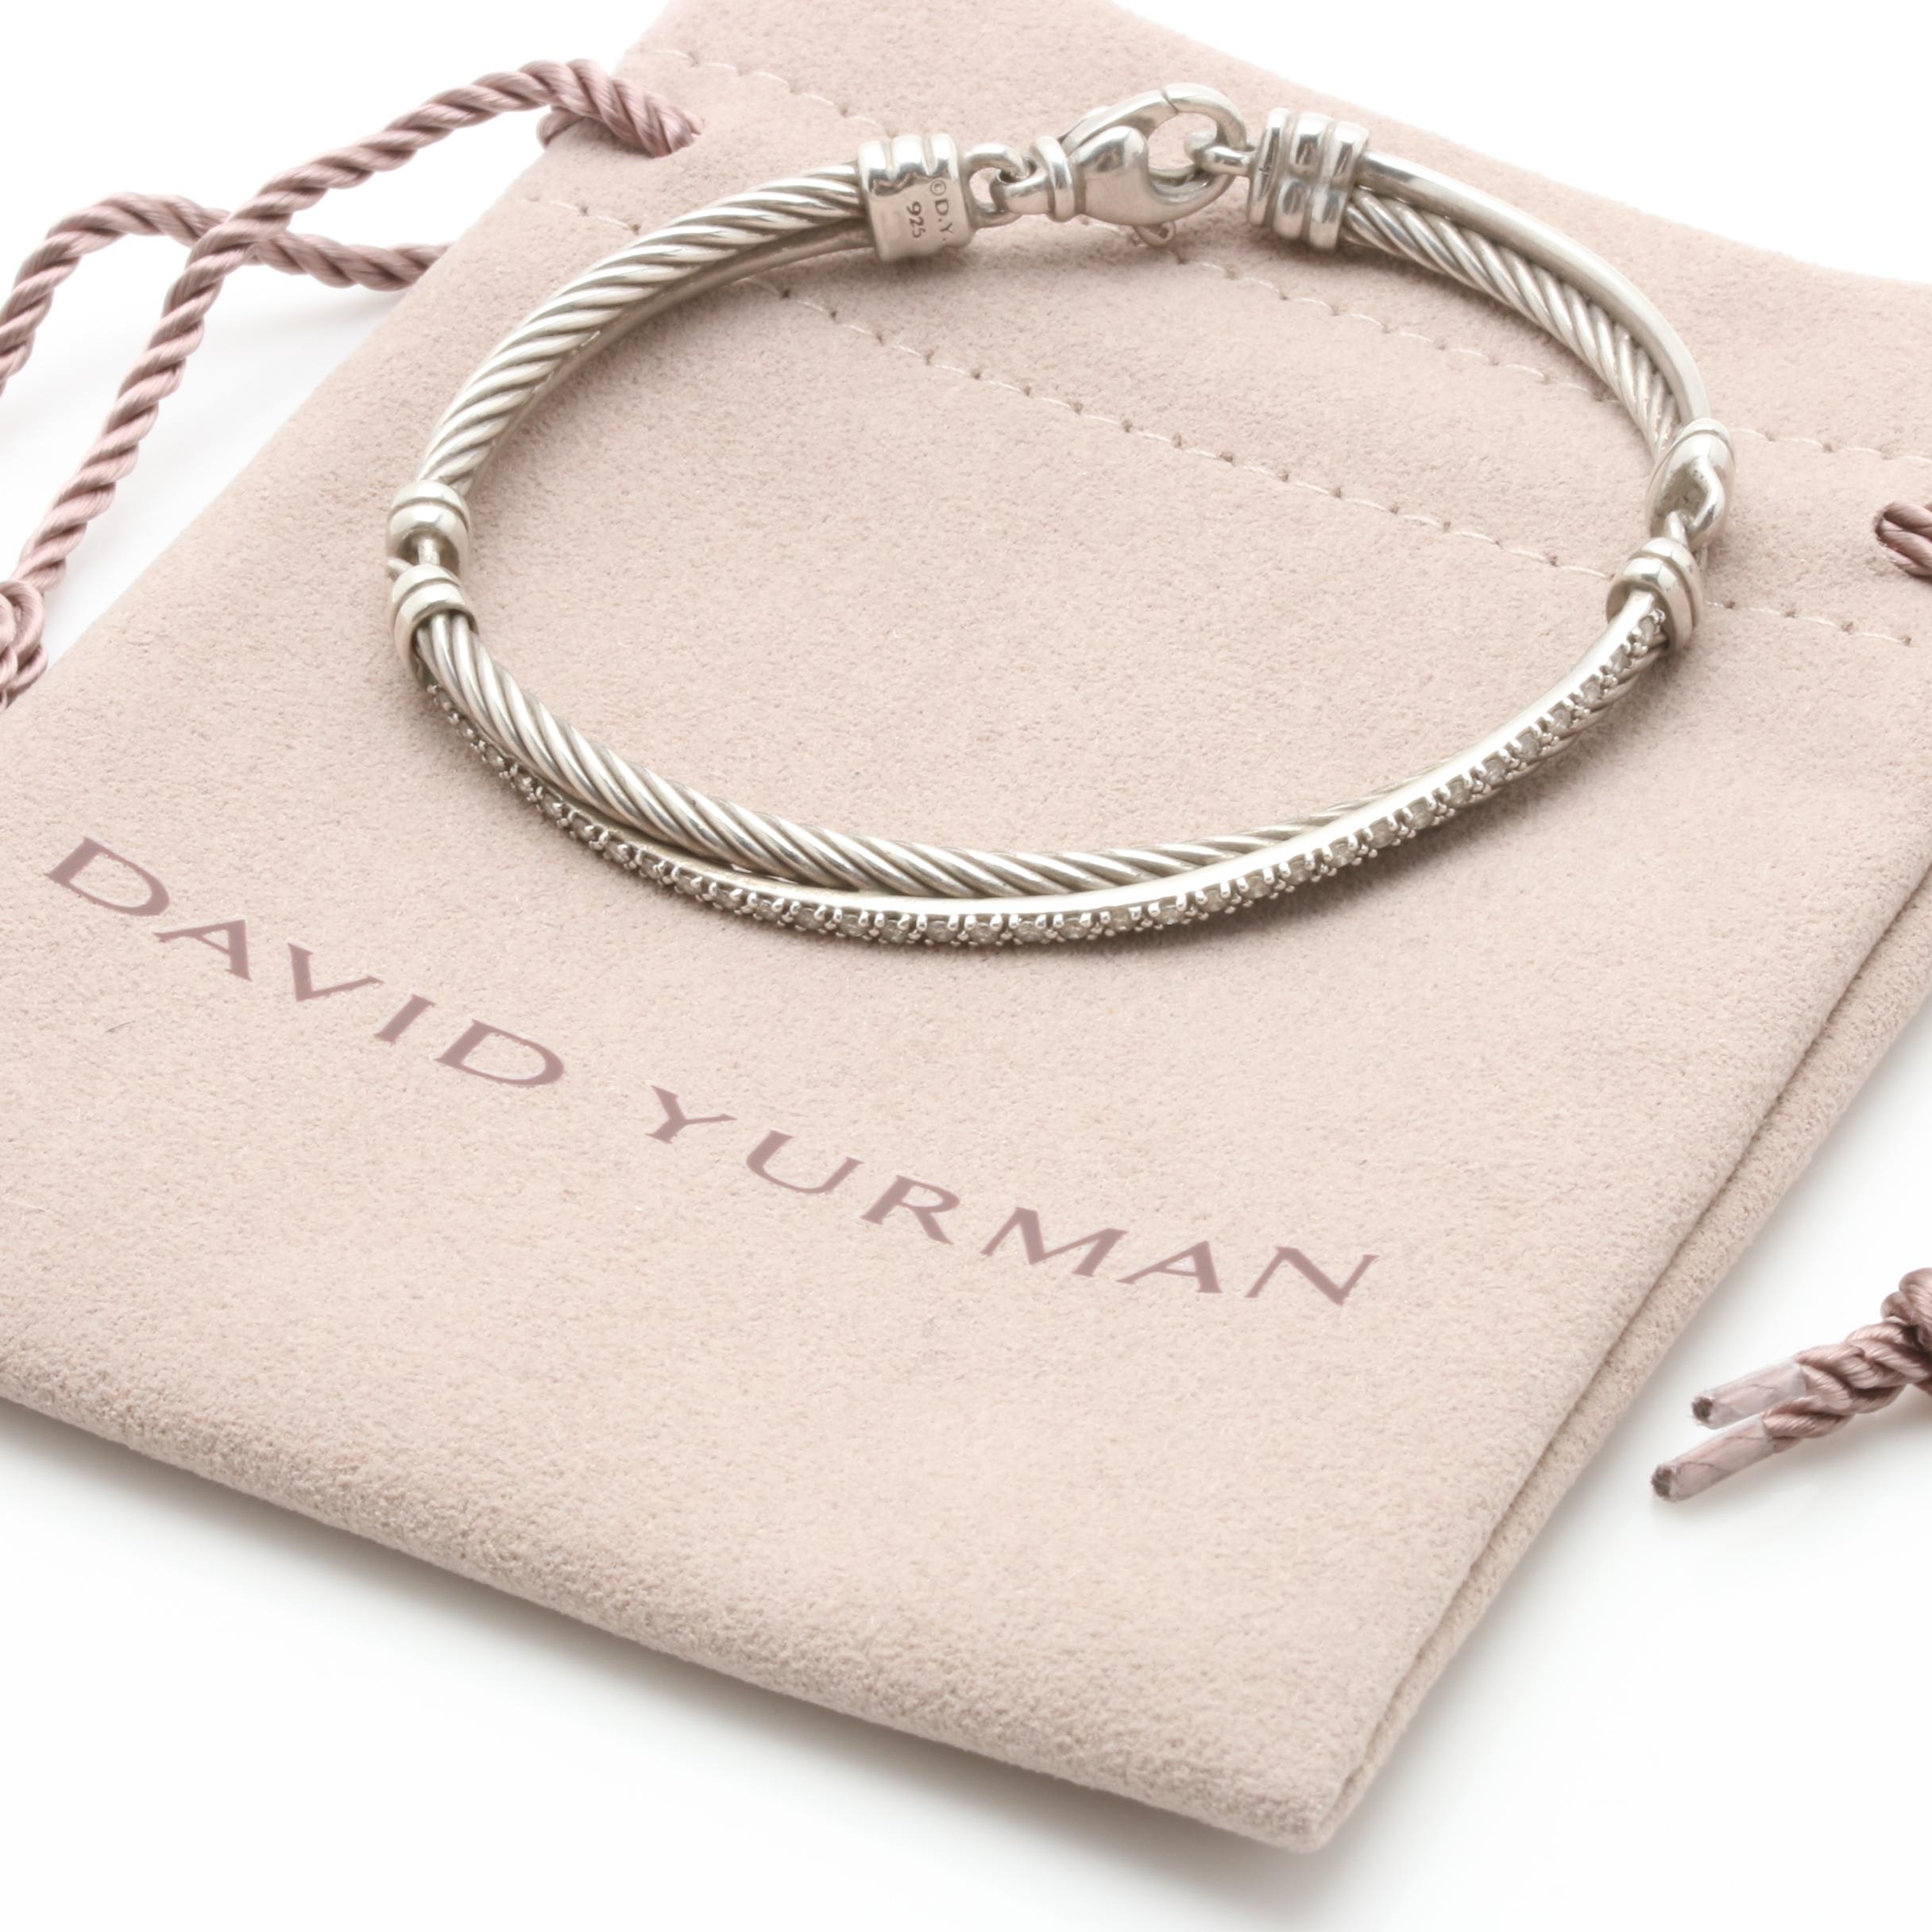 David Yurman Sterling Silver Diamond Bracelet